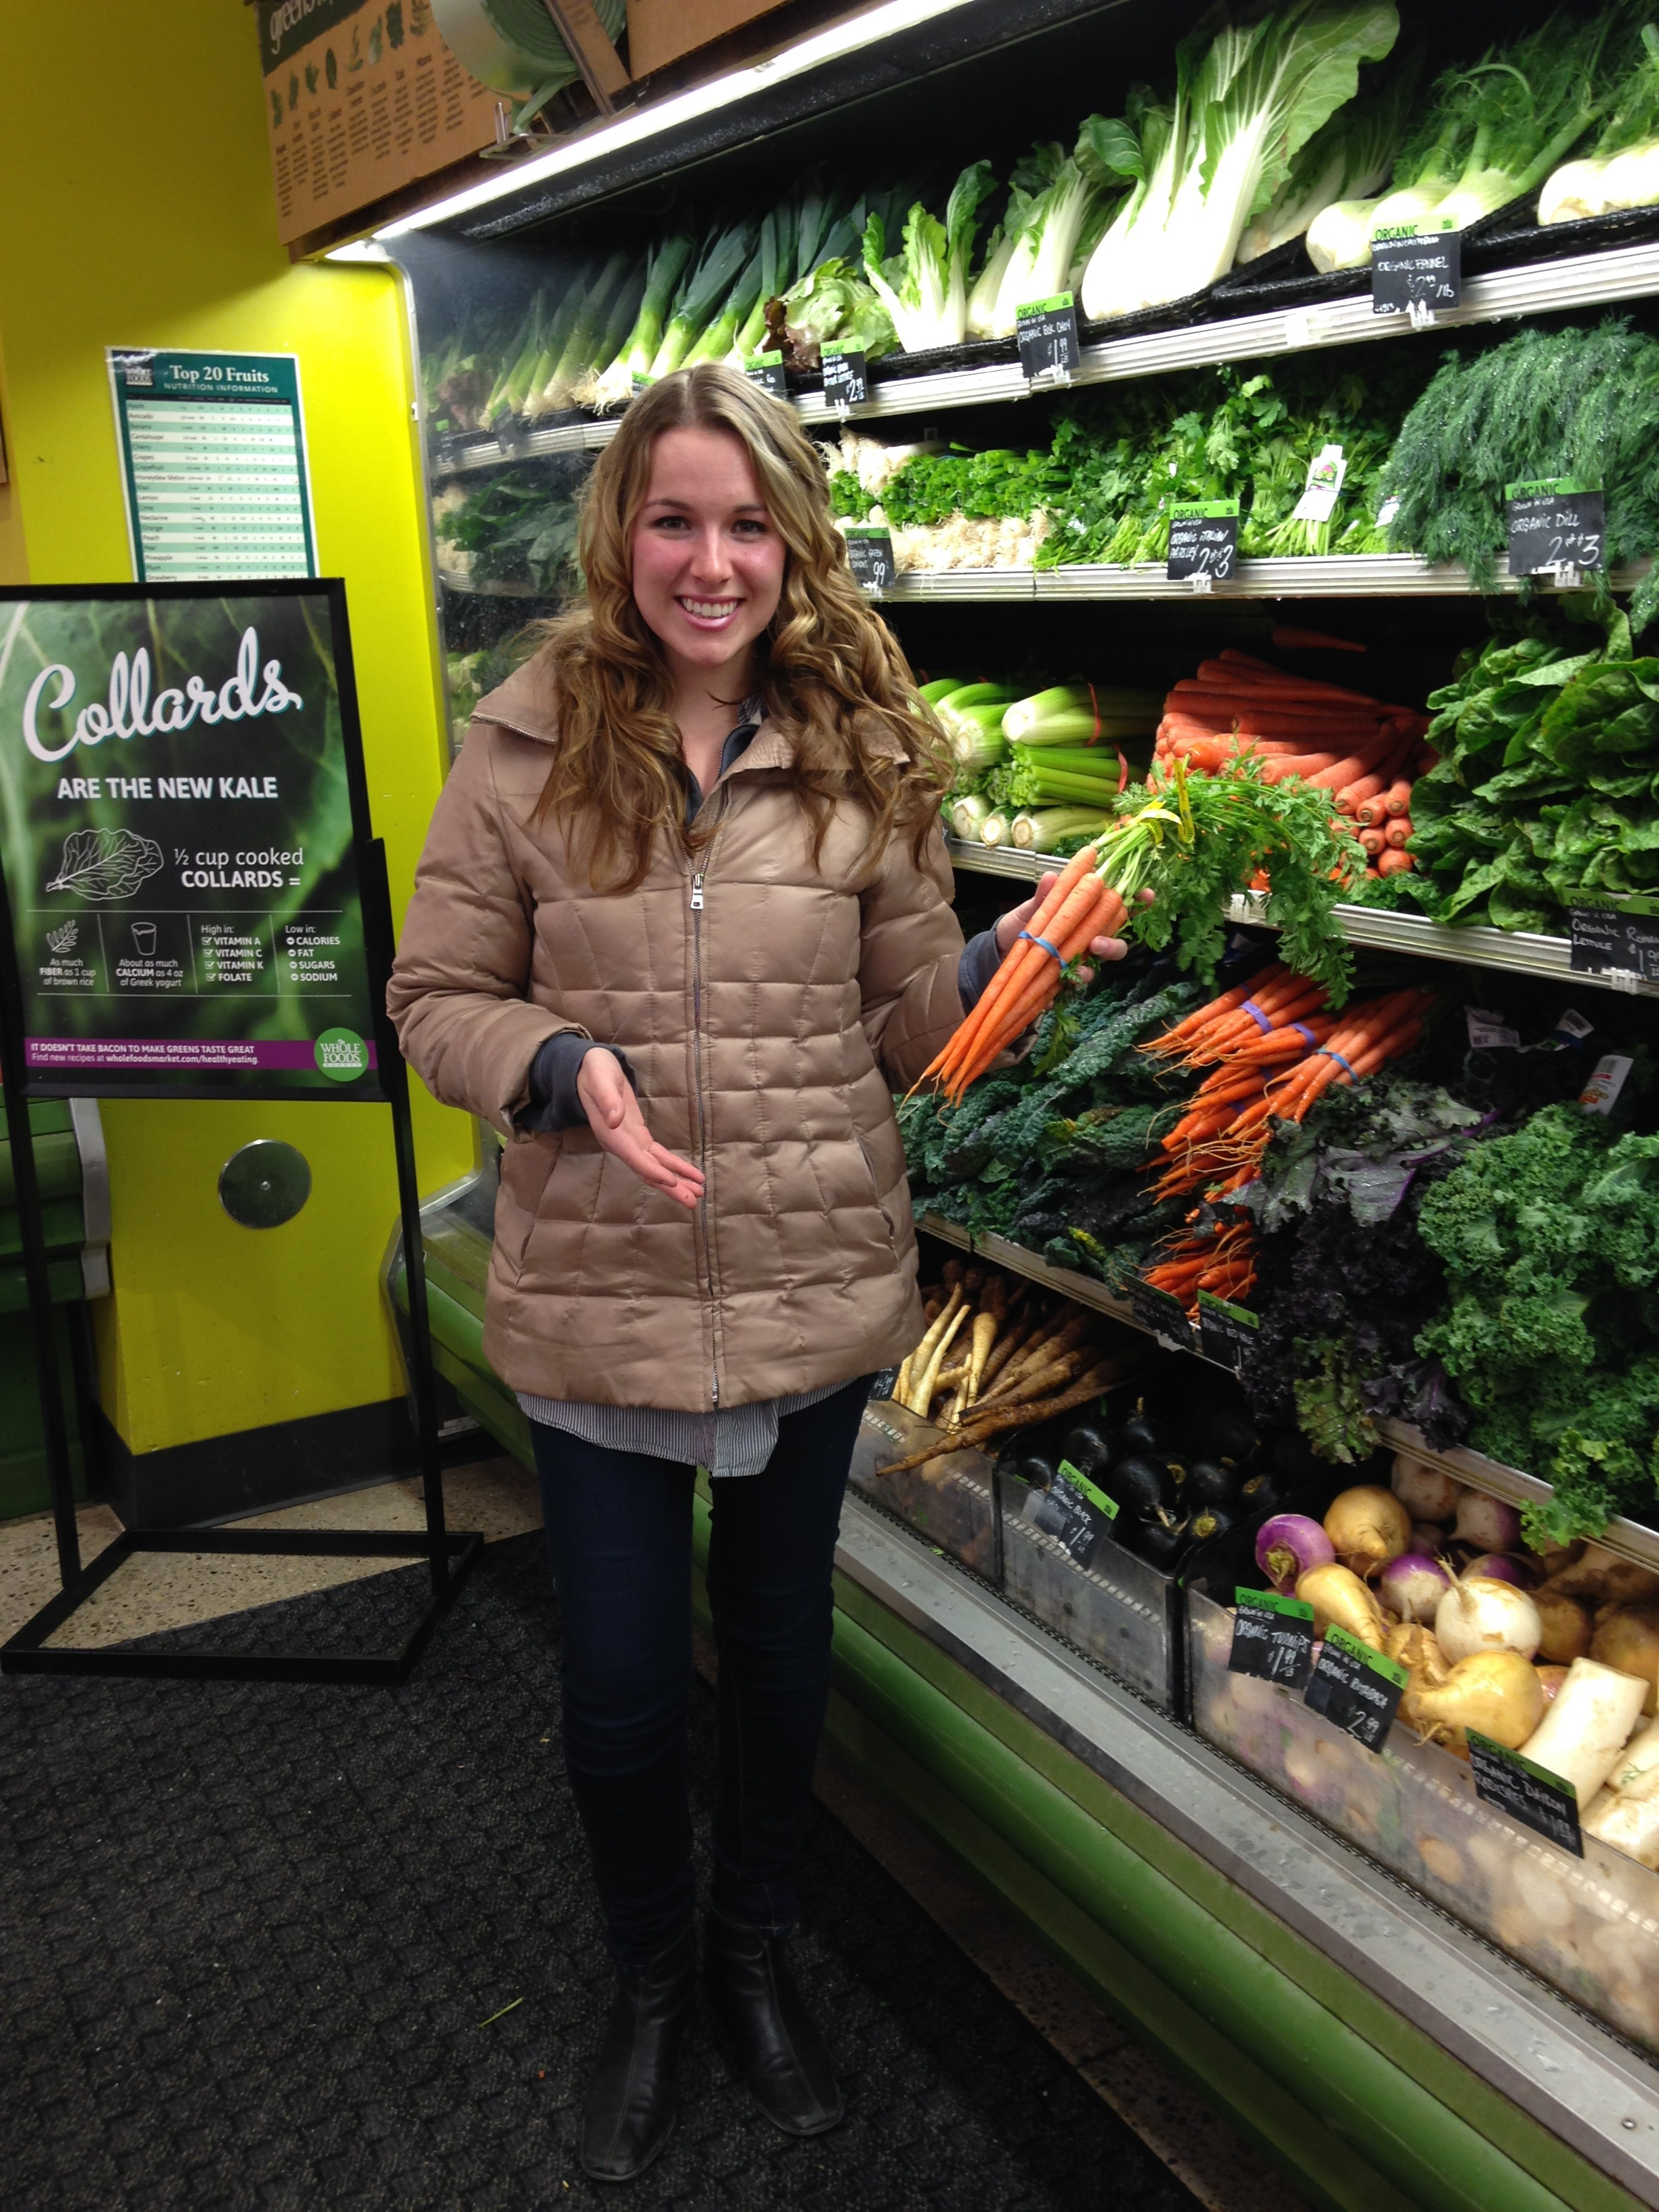 Making Calories Count: Healthy Eating Tips from Nutritionist Laura Bonhard - Quicken Loans Zing Blog